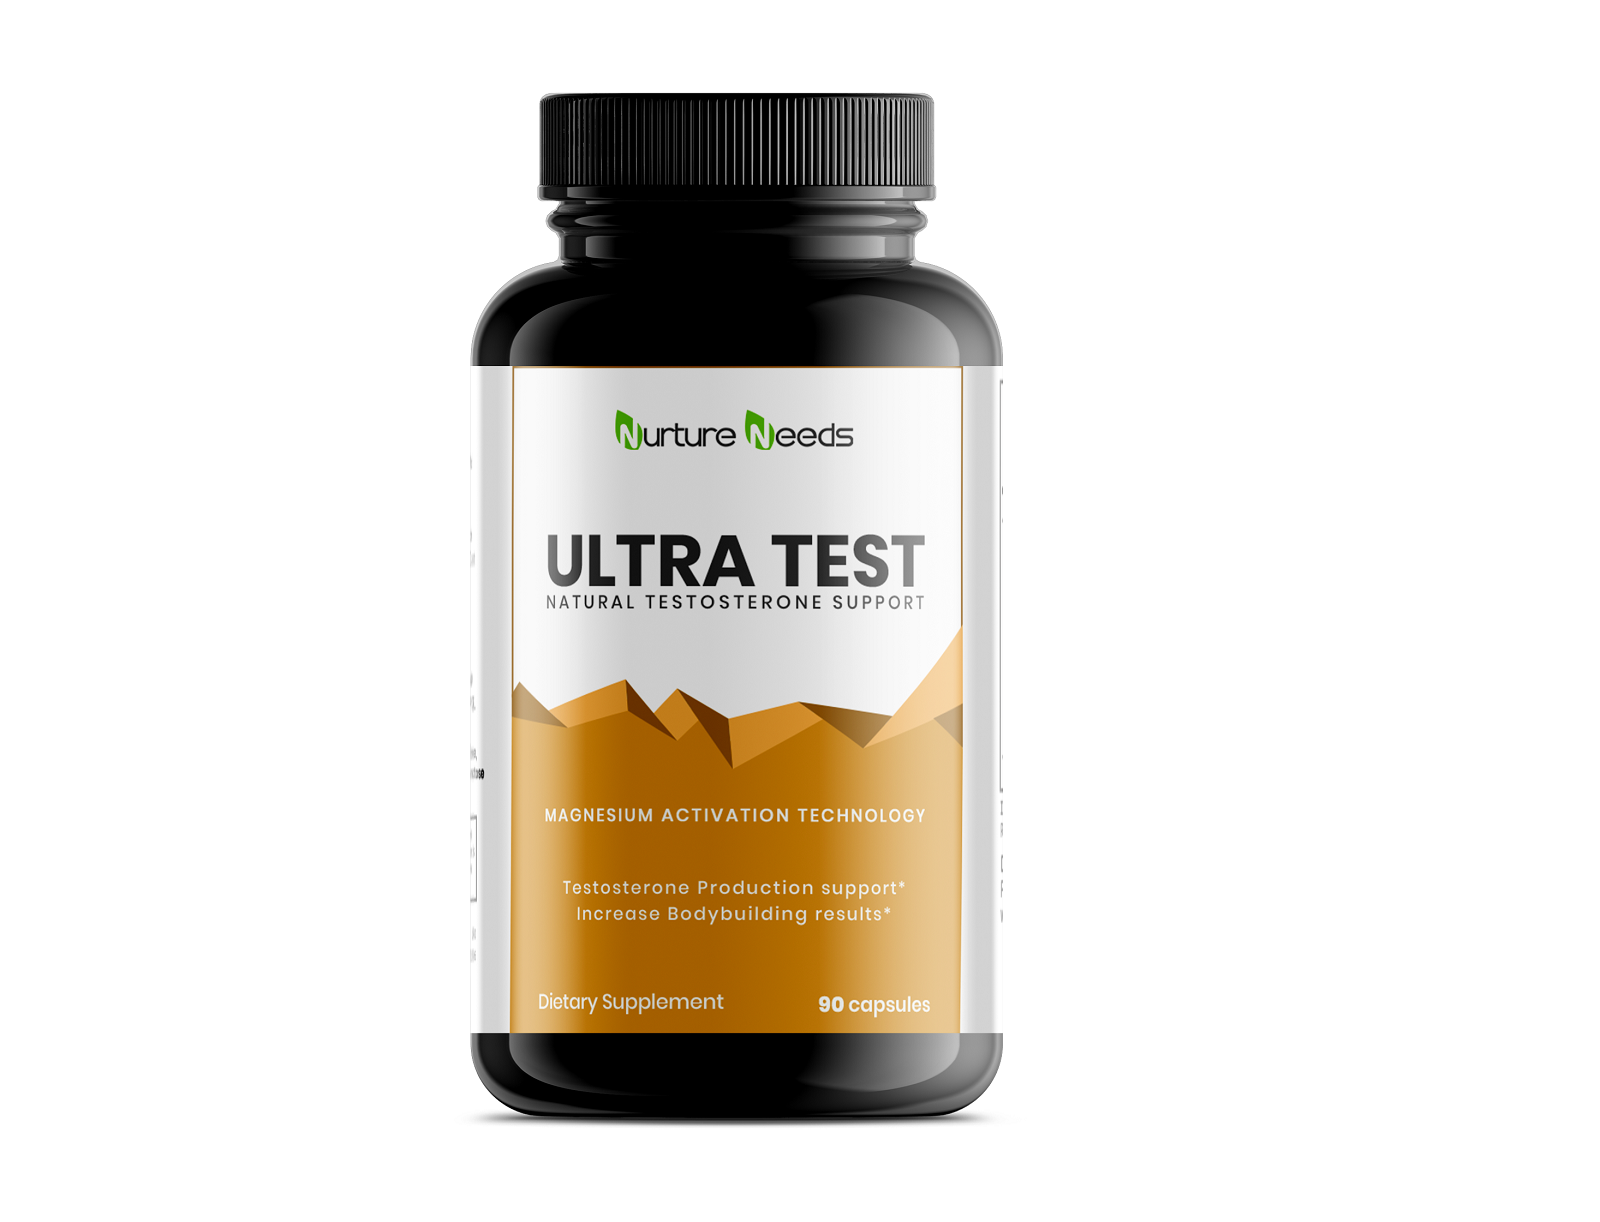 3D Ultra Test Natural Testosterone Support2